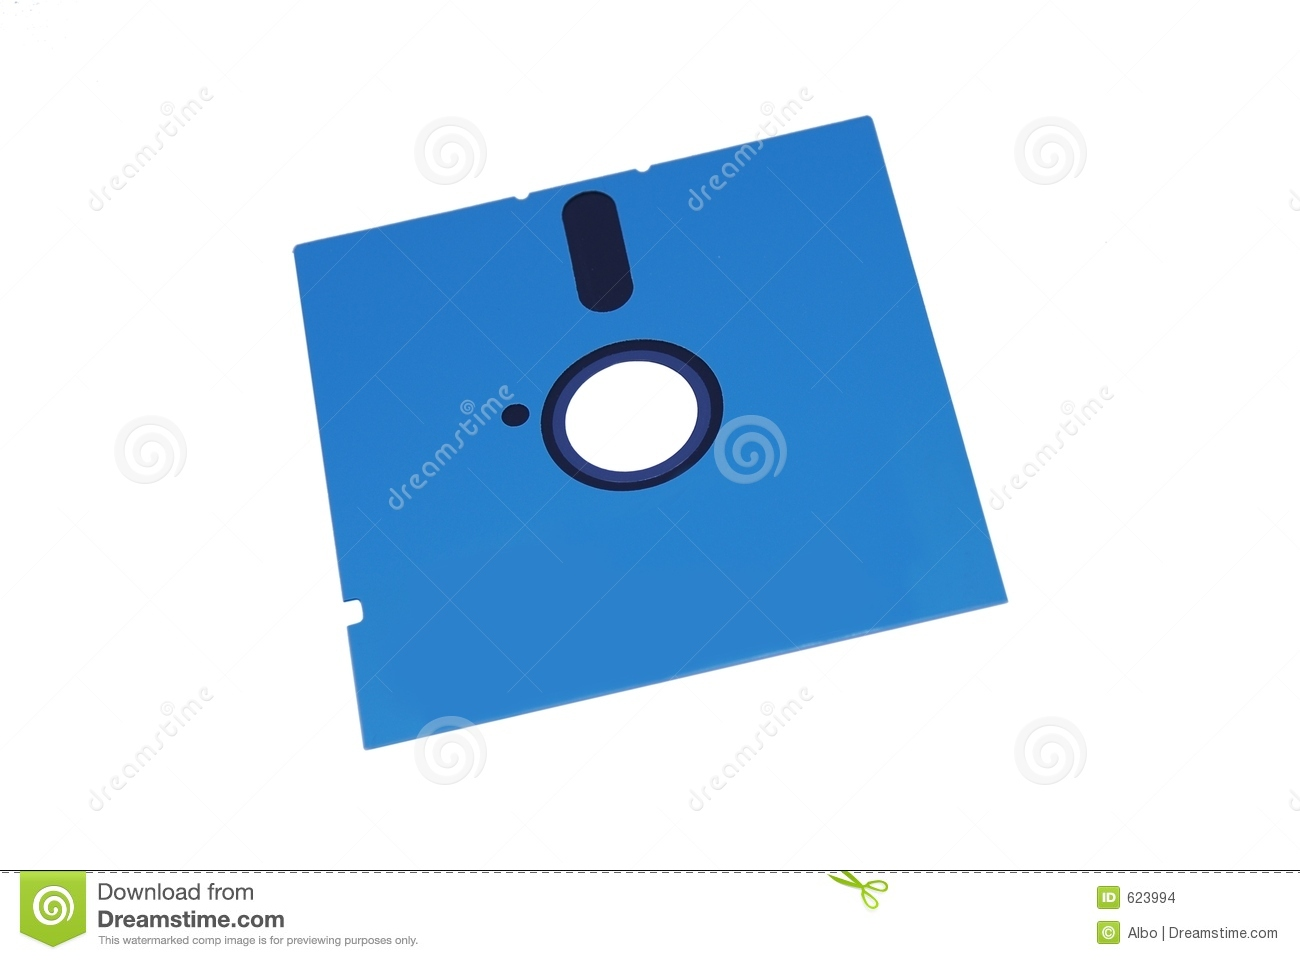 Oude diskette